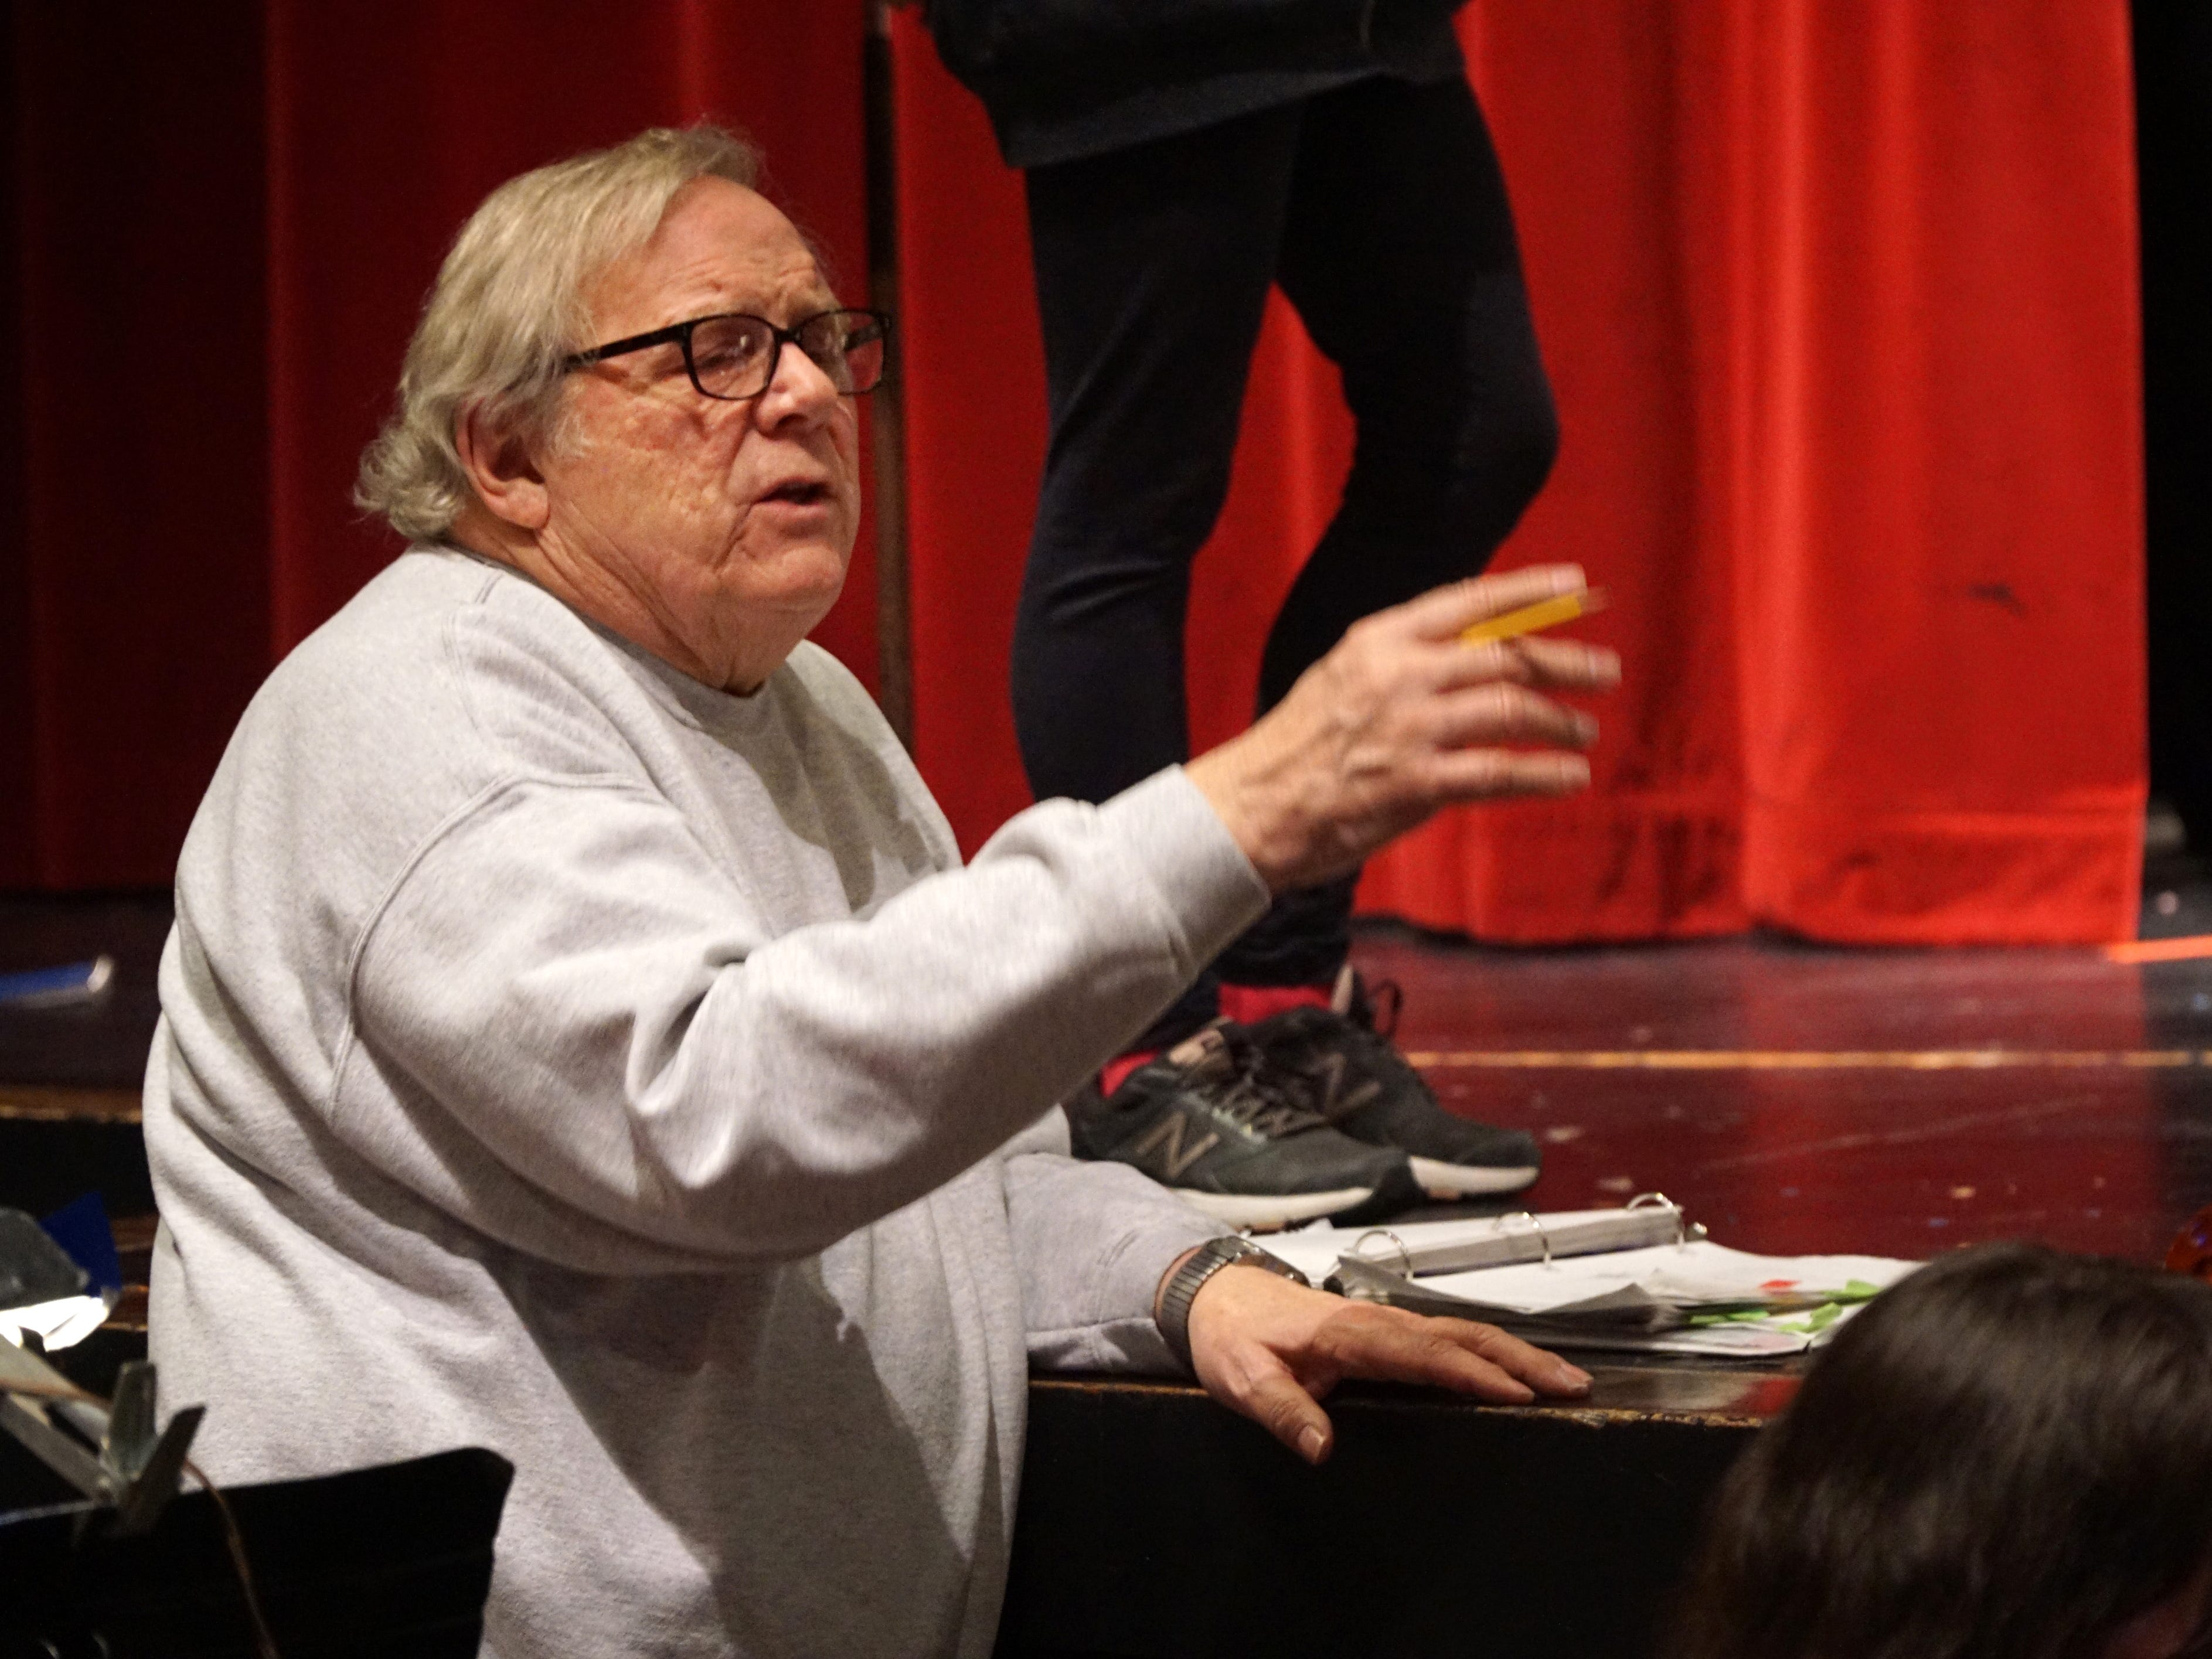 Once Upon a Mattress director Dean Cobb coordinates his musicians, actors and dancers during a March 11 rehearsal.